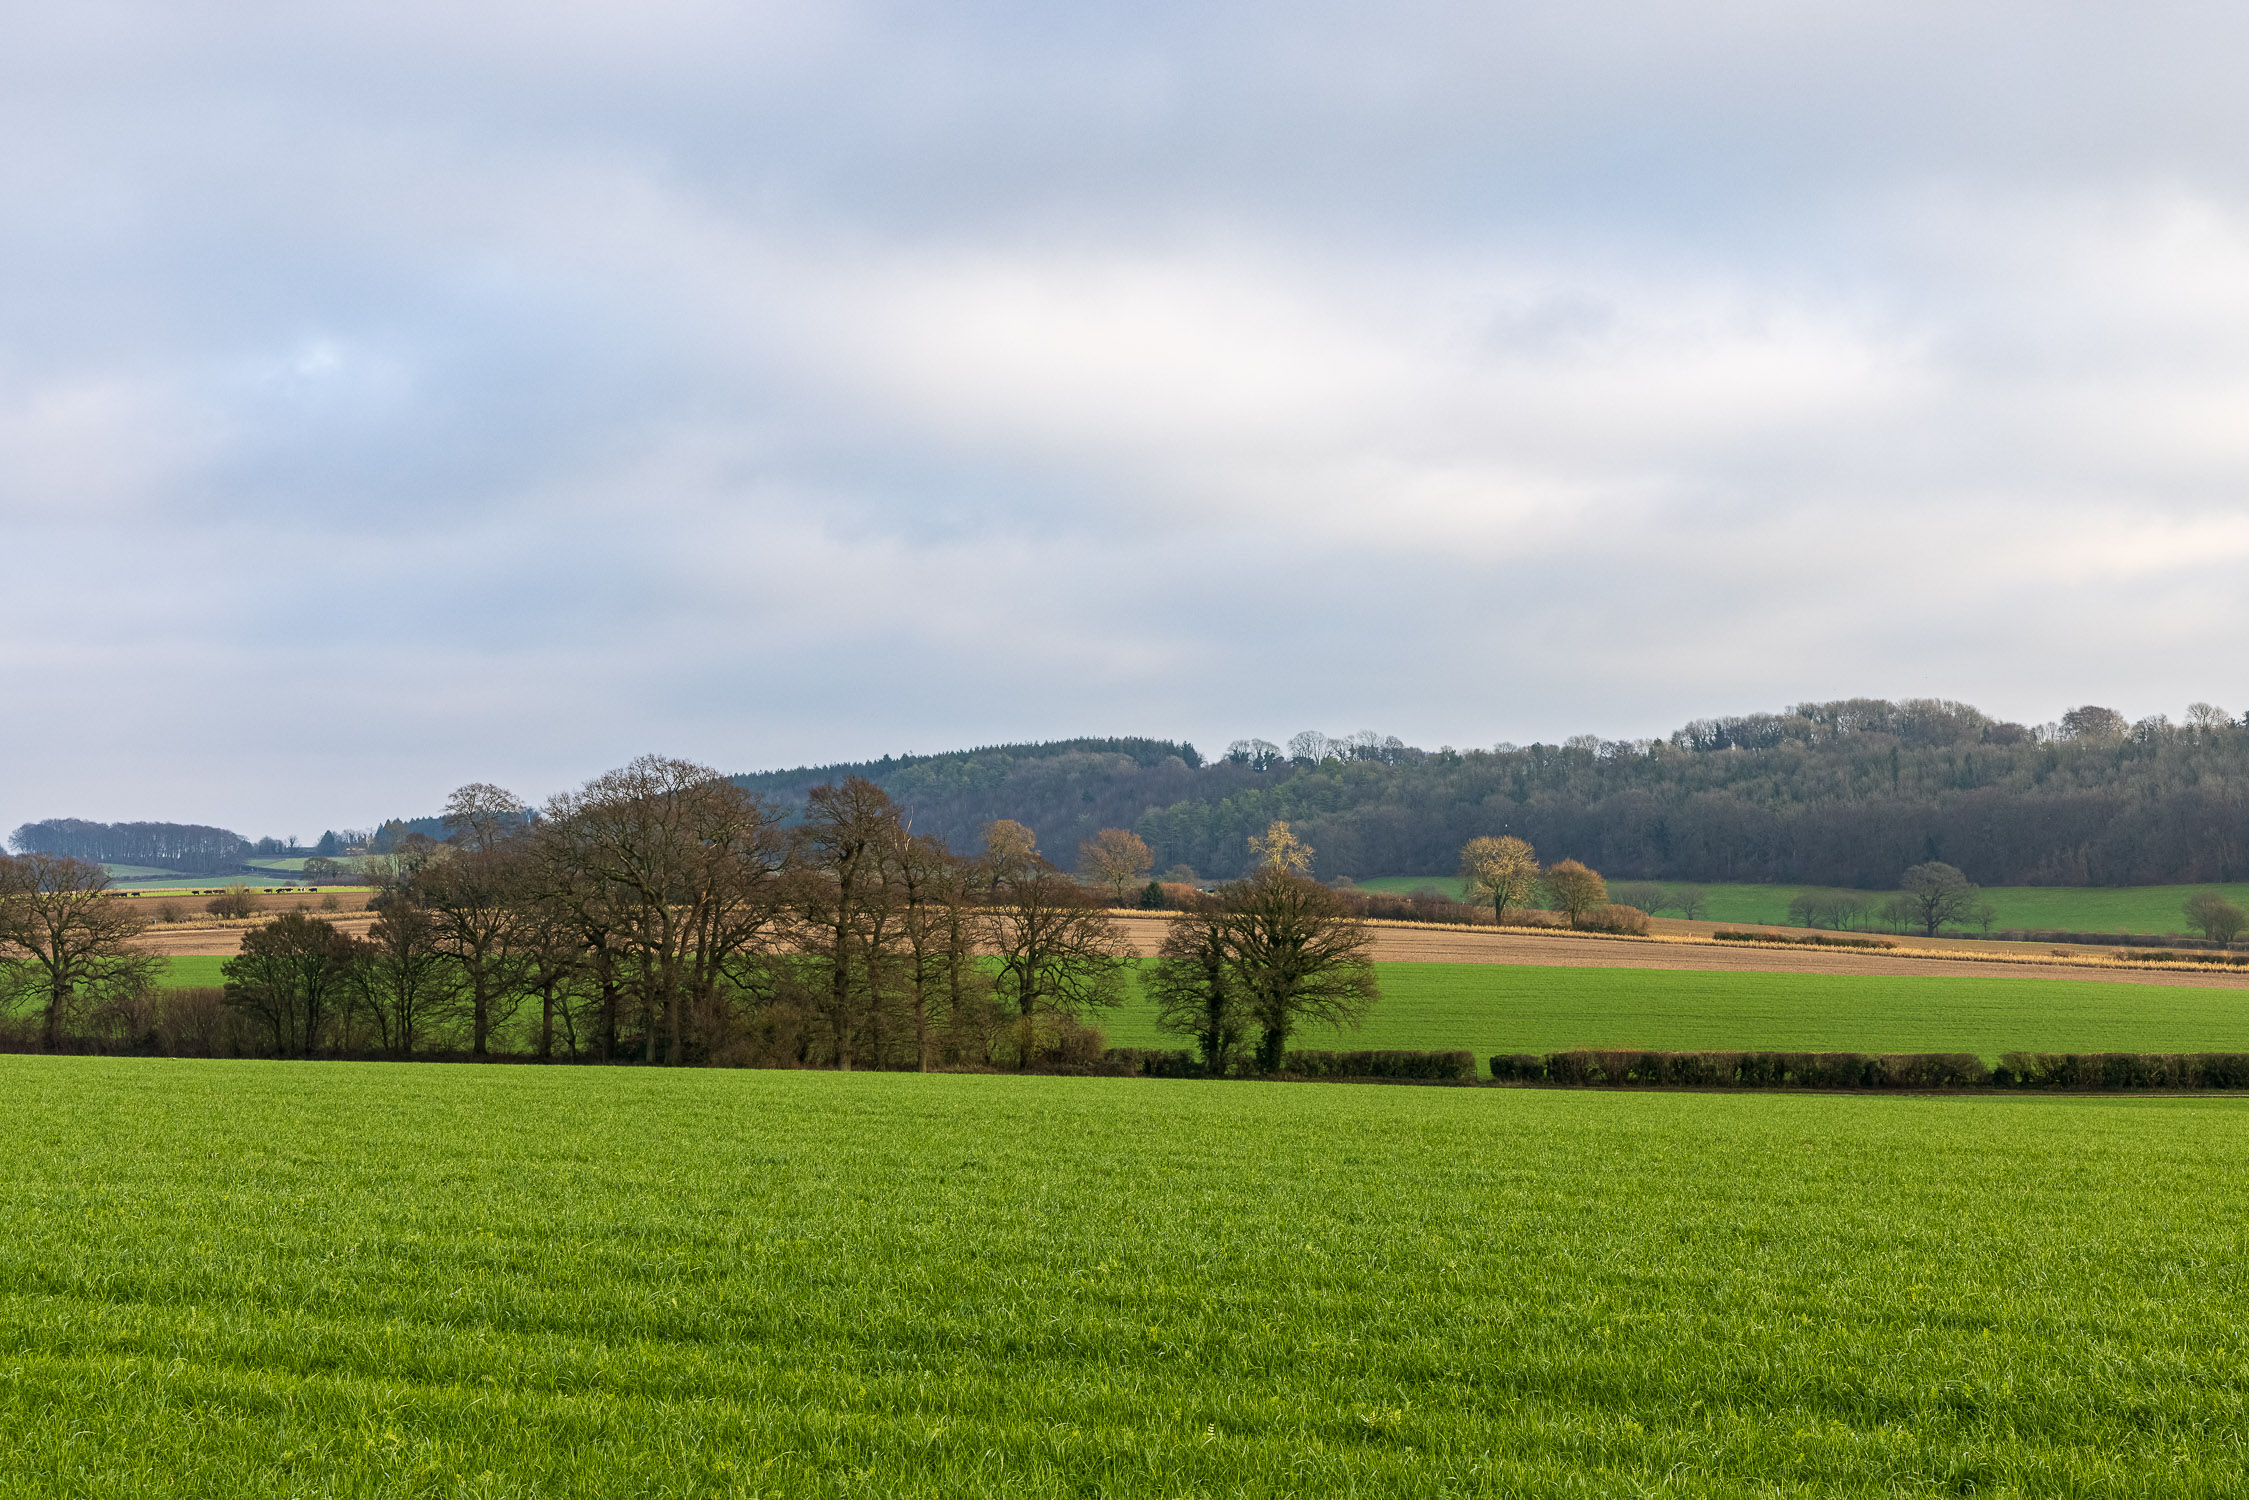 Fields, trees and hills